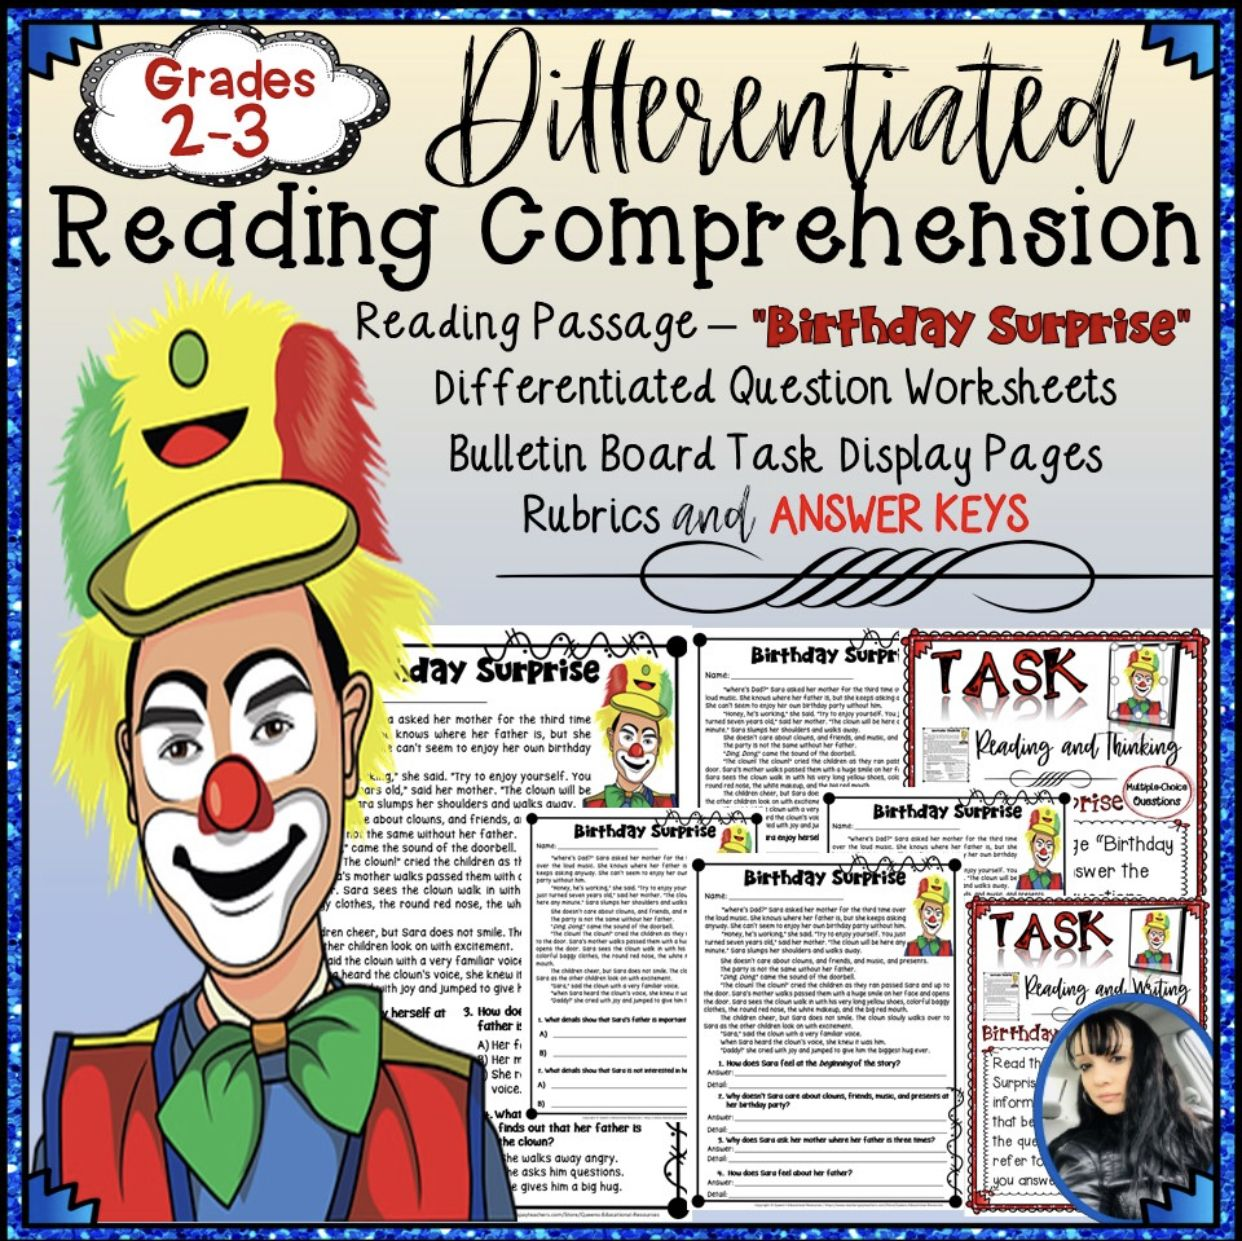 Reading Comprehension Passage 4 With Differentiated